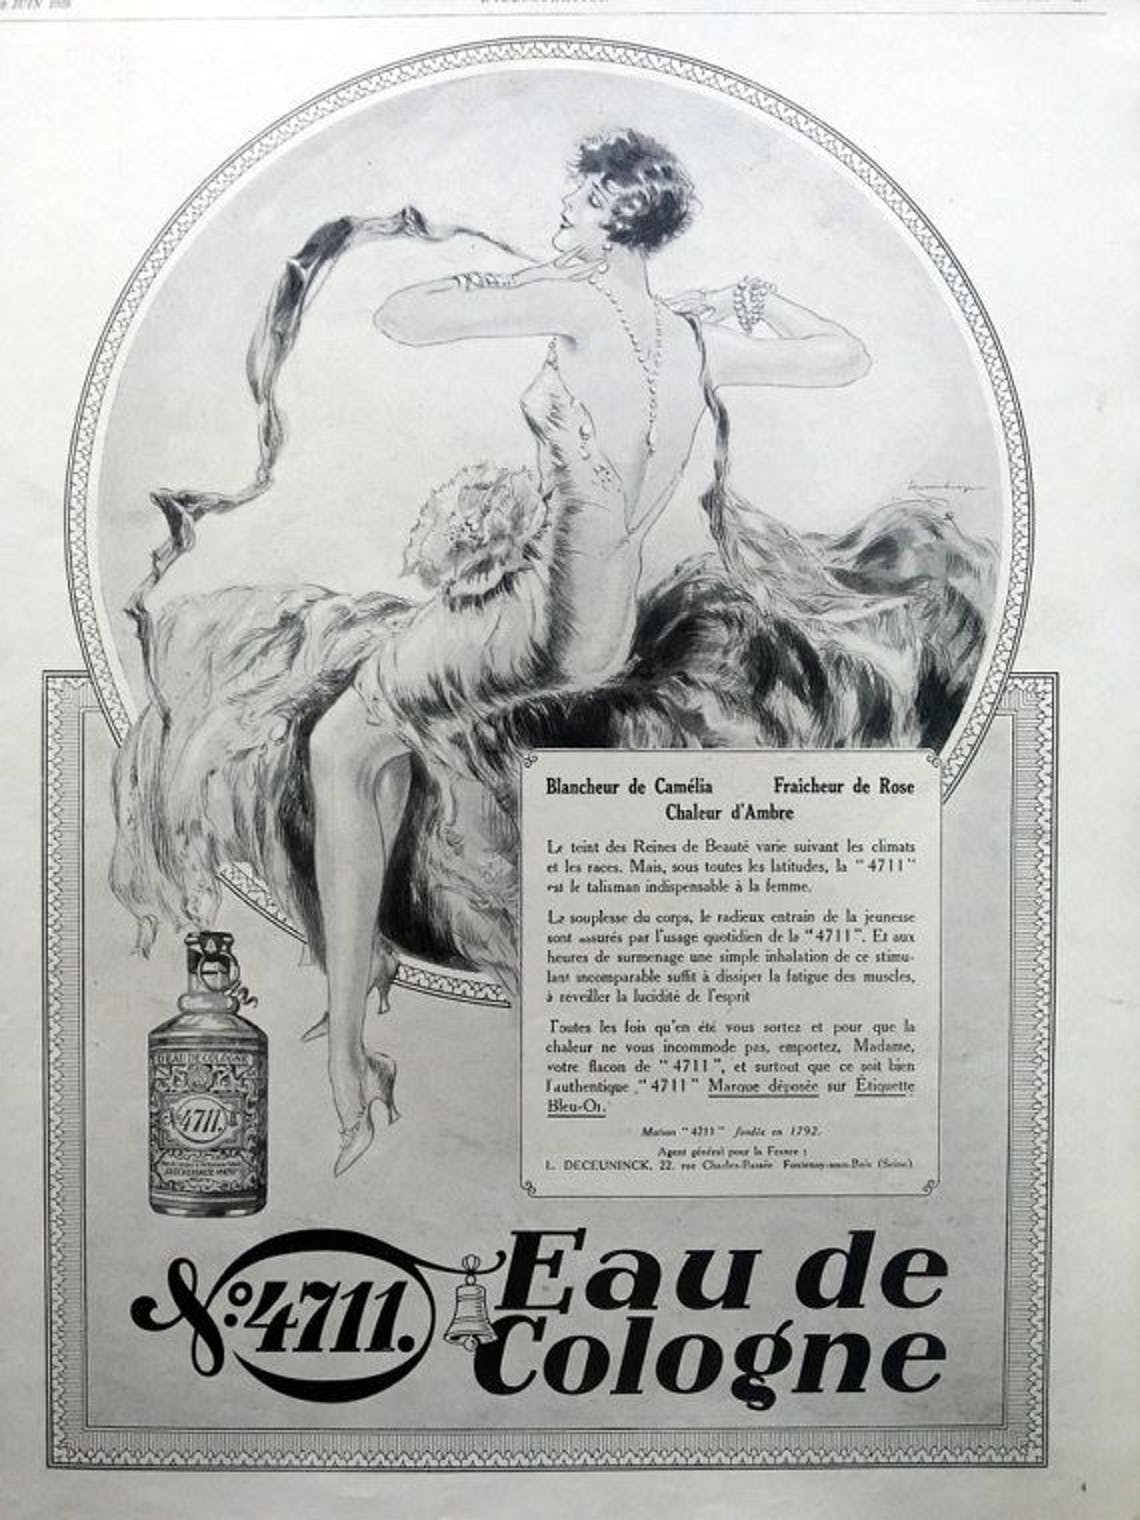 An advertisement for an early Eau De Cologne, worn by all genders.